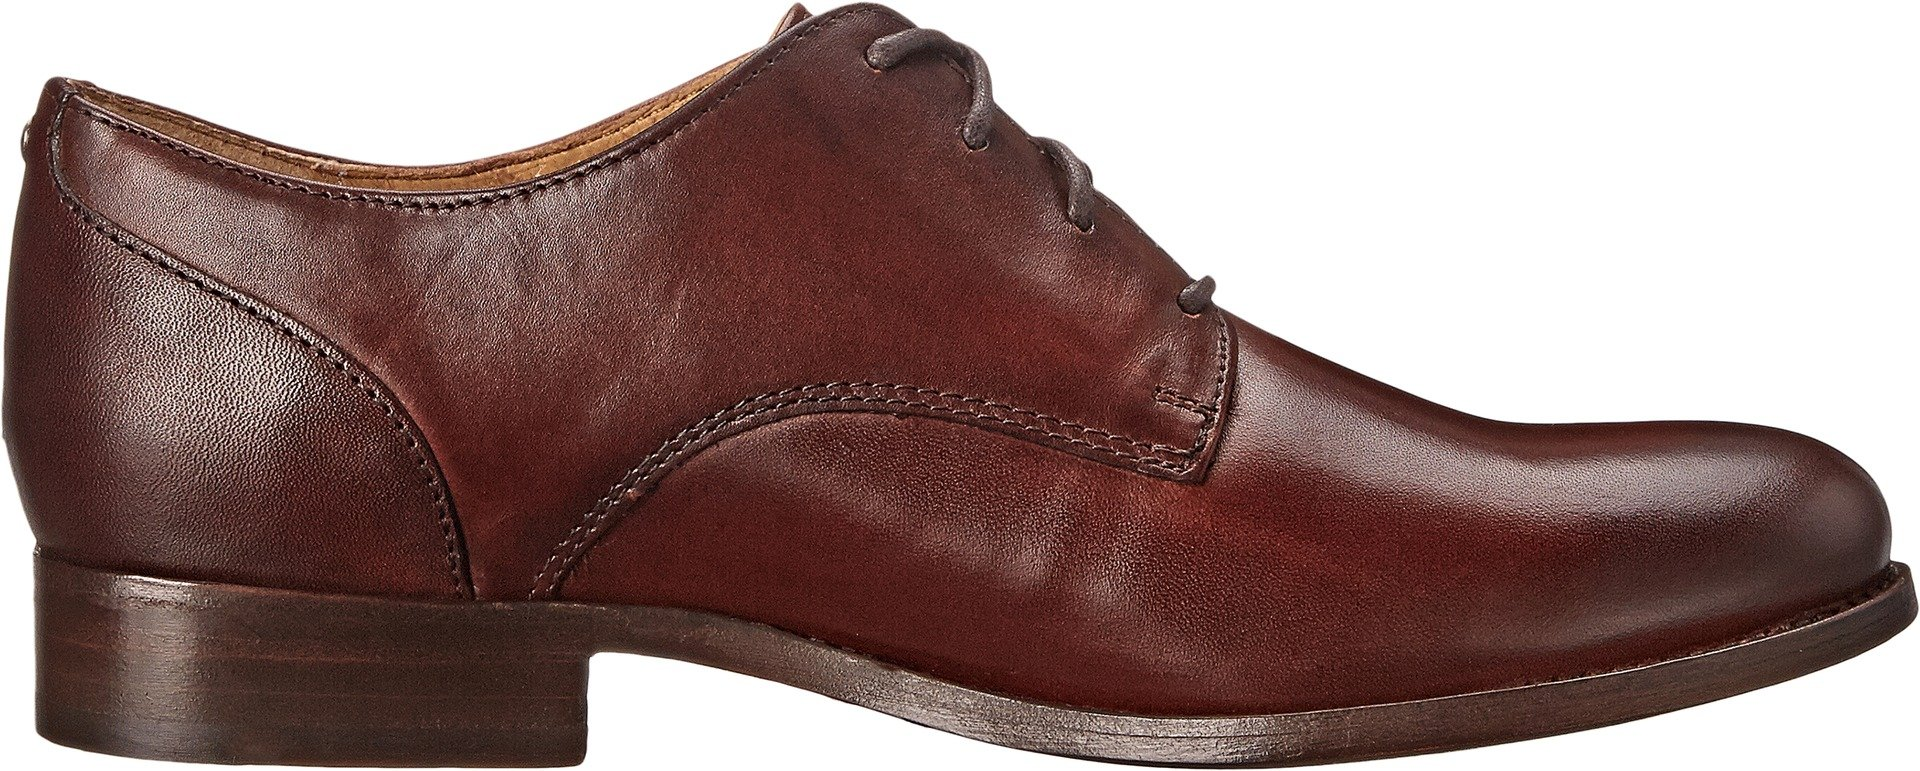 Frye Women's Melissa Oxford Redwood Smooth Vintage Leather Oxford